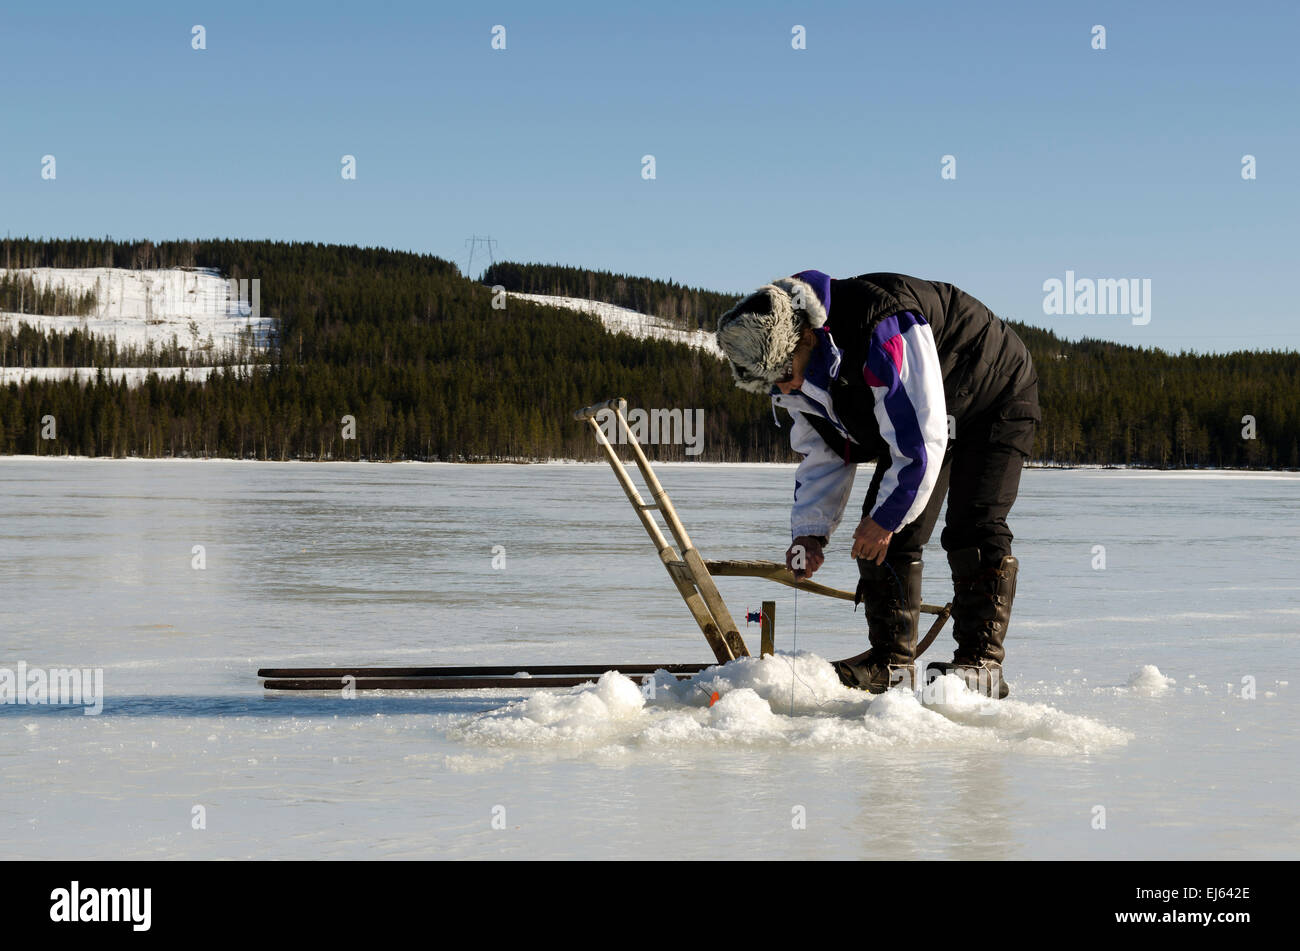 Women from North of Sweden checking if some fish is stuck on the hook, and with a special vehicle for use on ice. - Stock Image